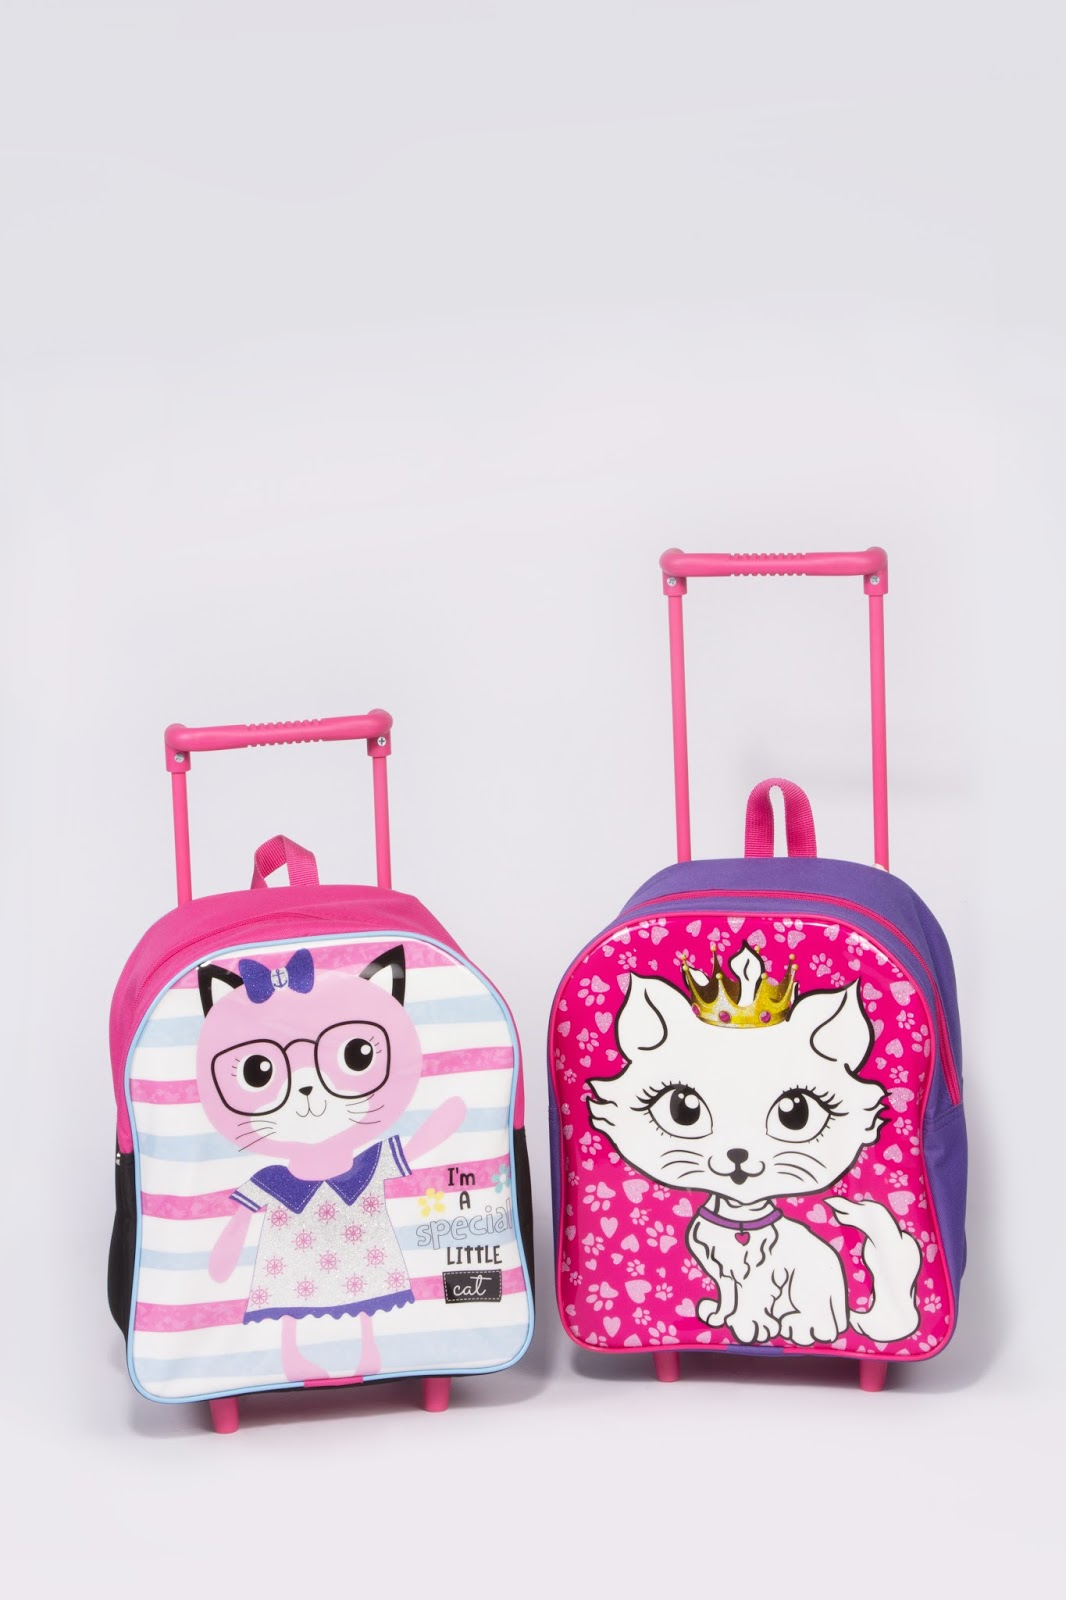 a9f2ba046d1c2 Loving these cute bags that surely your little princess would love to! :) I  personally love the cat with eye glasses! ^_^ Go big on fun prints and  their ...